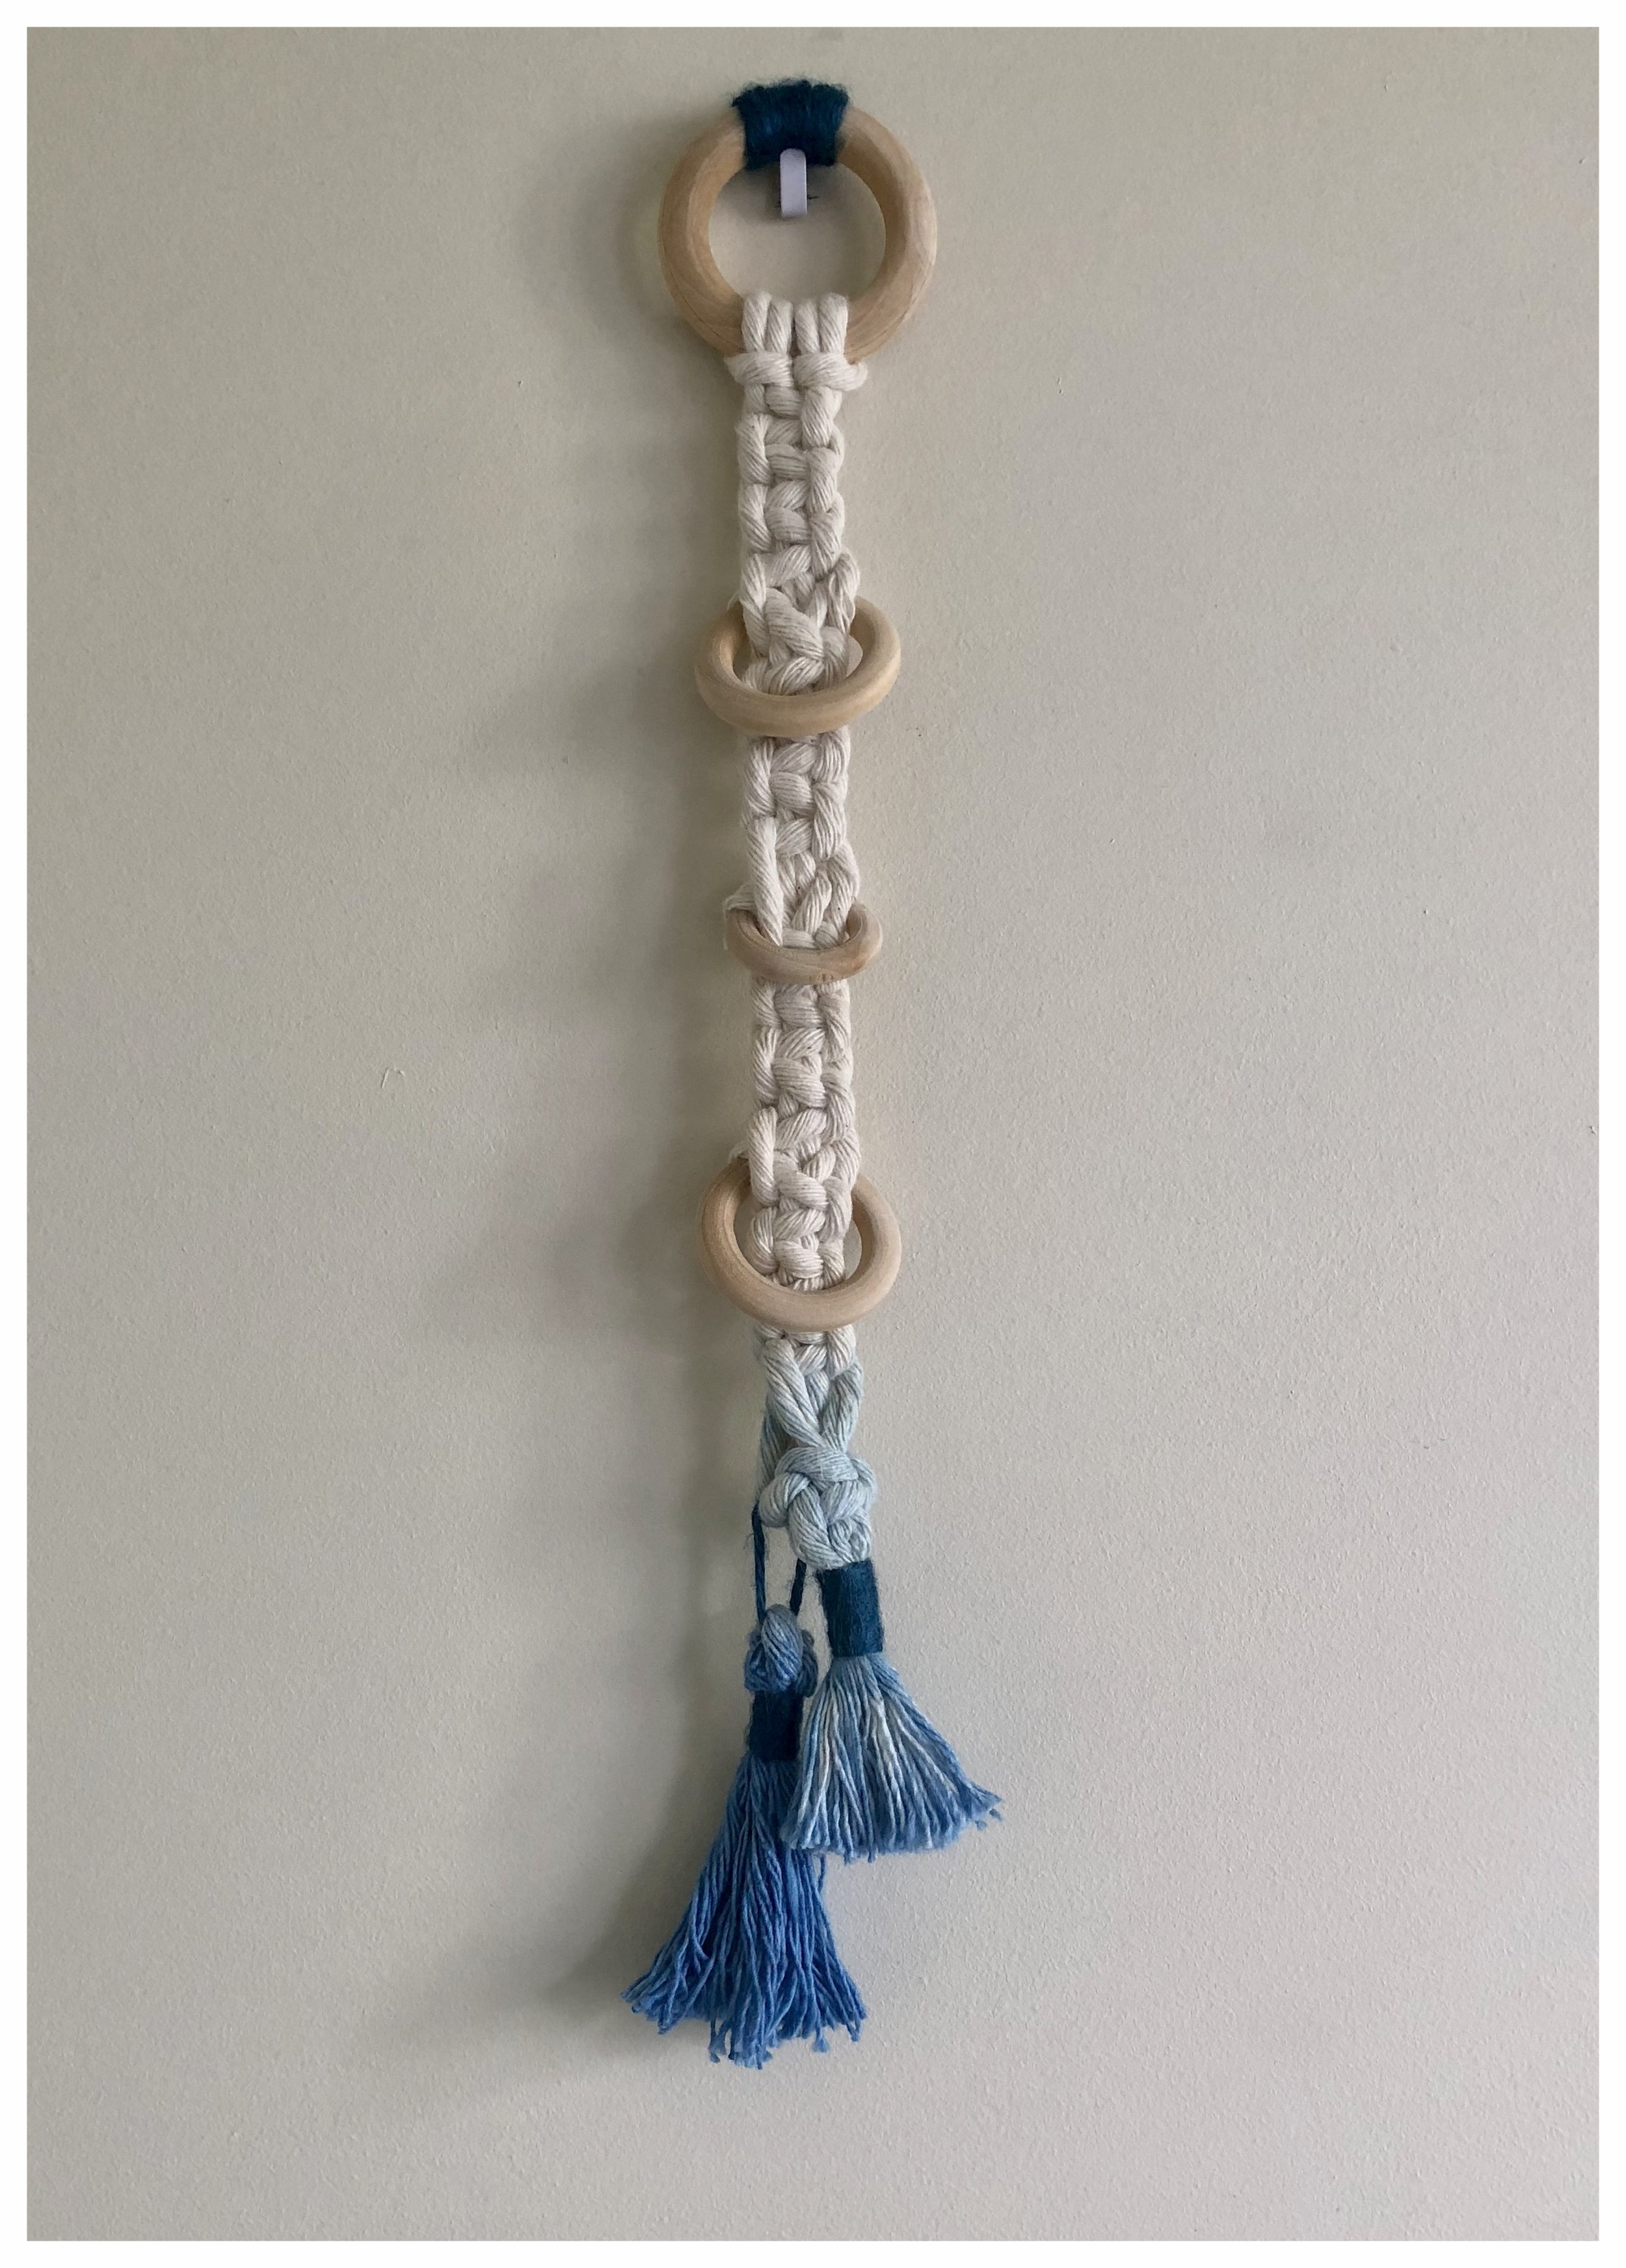 Handmade small macrame wall hanging | Ombre dyed £16